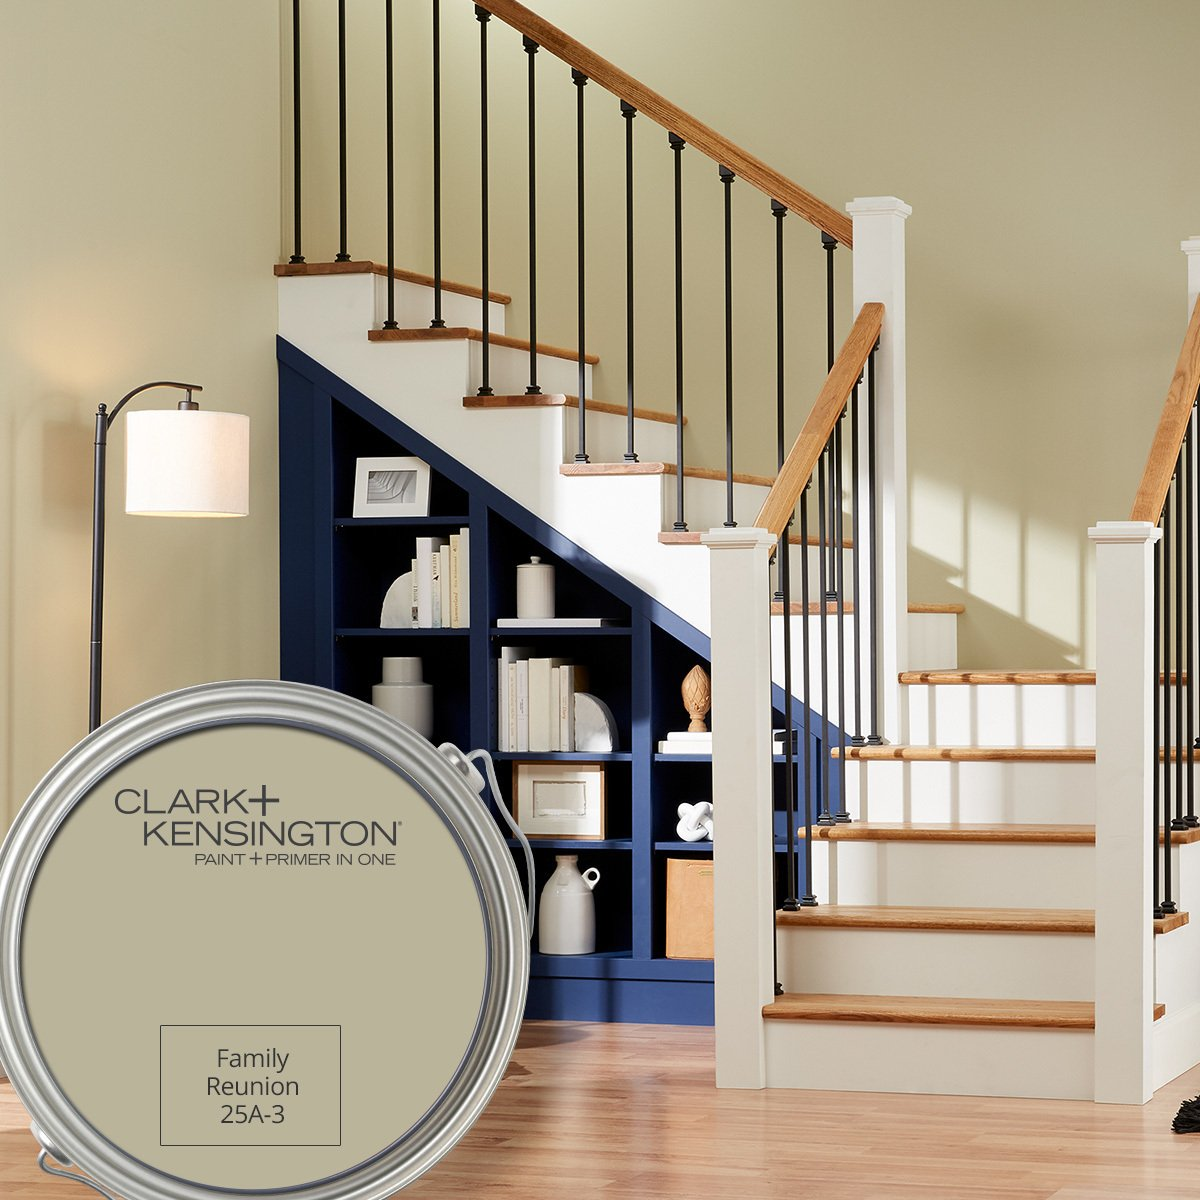 Check out our October Color of the Month, Family Reunion by Clark & Kensington. This neutral shade works everywhere, which room would you paint with it? thumbnail